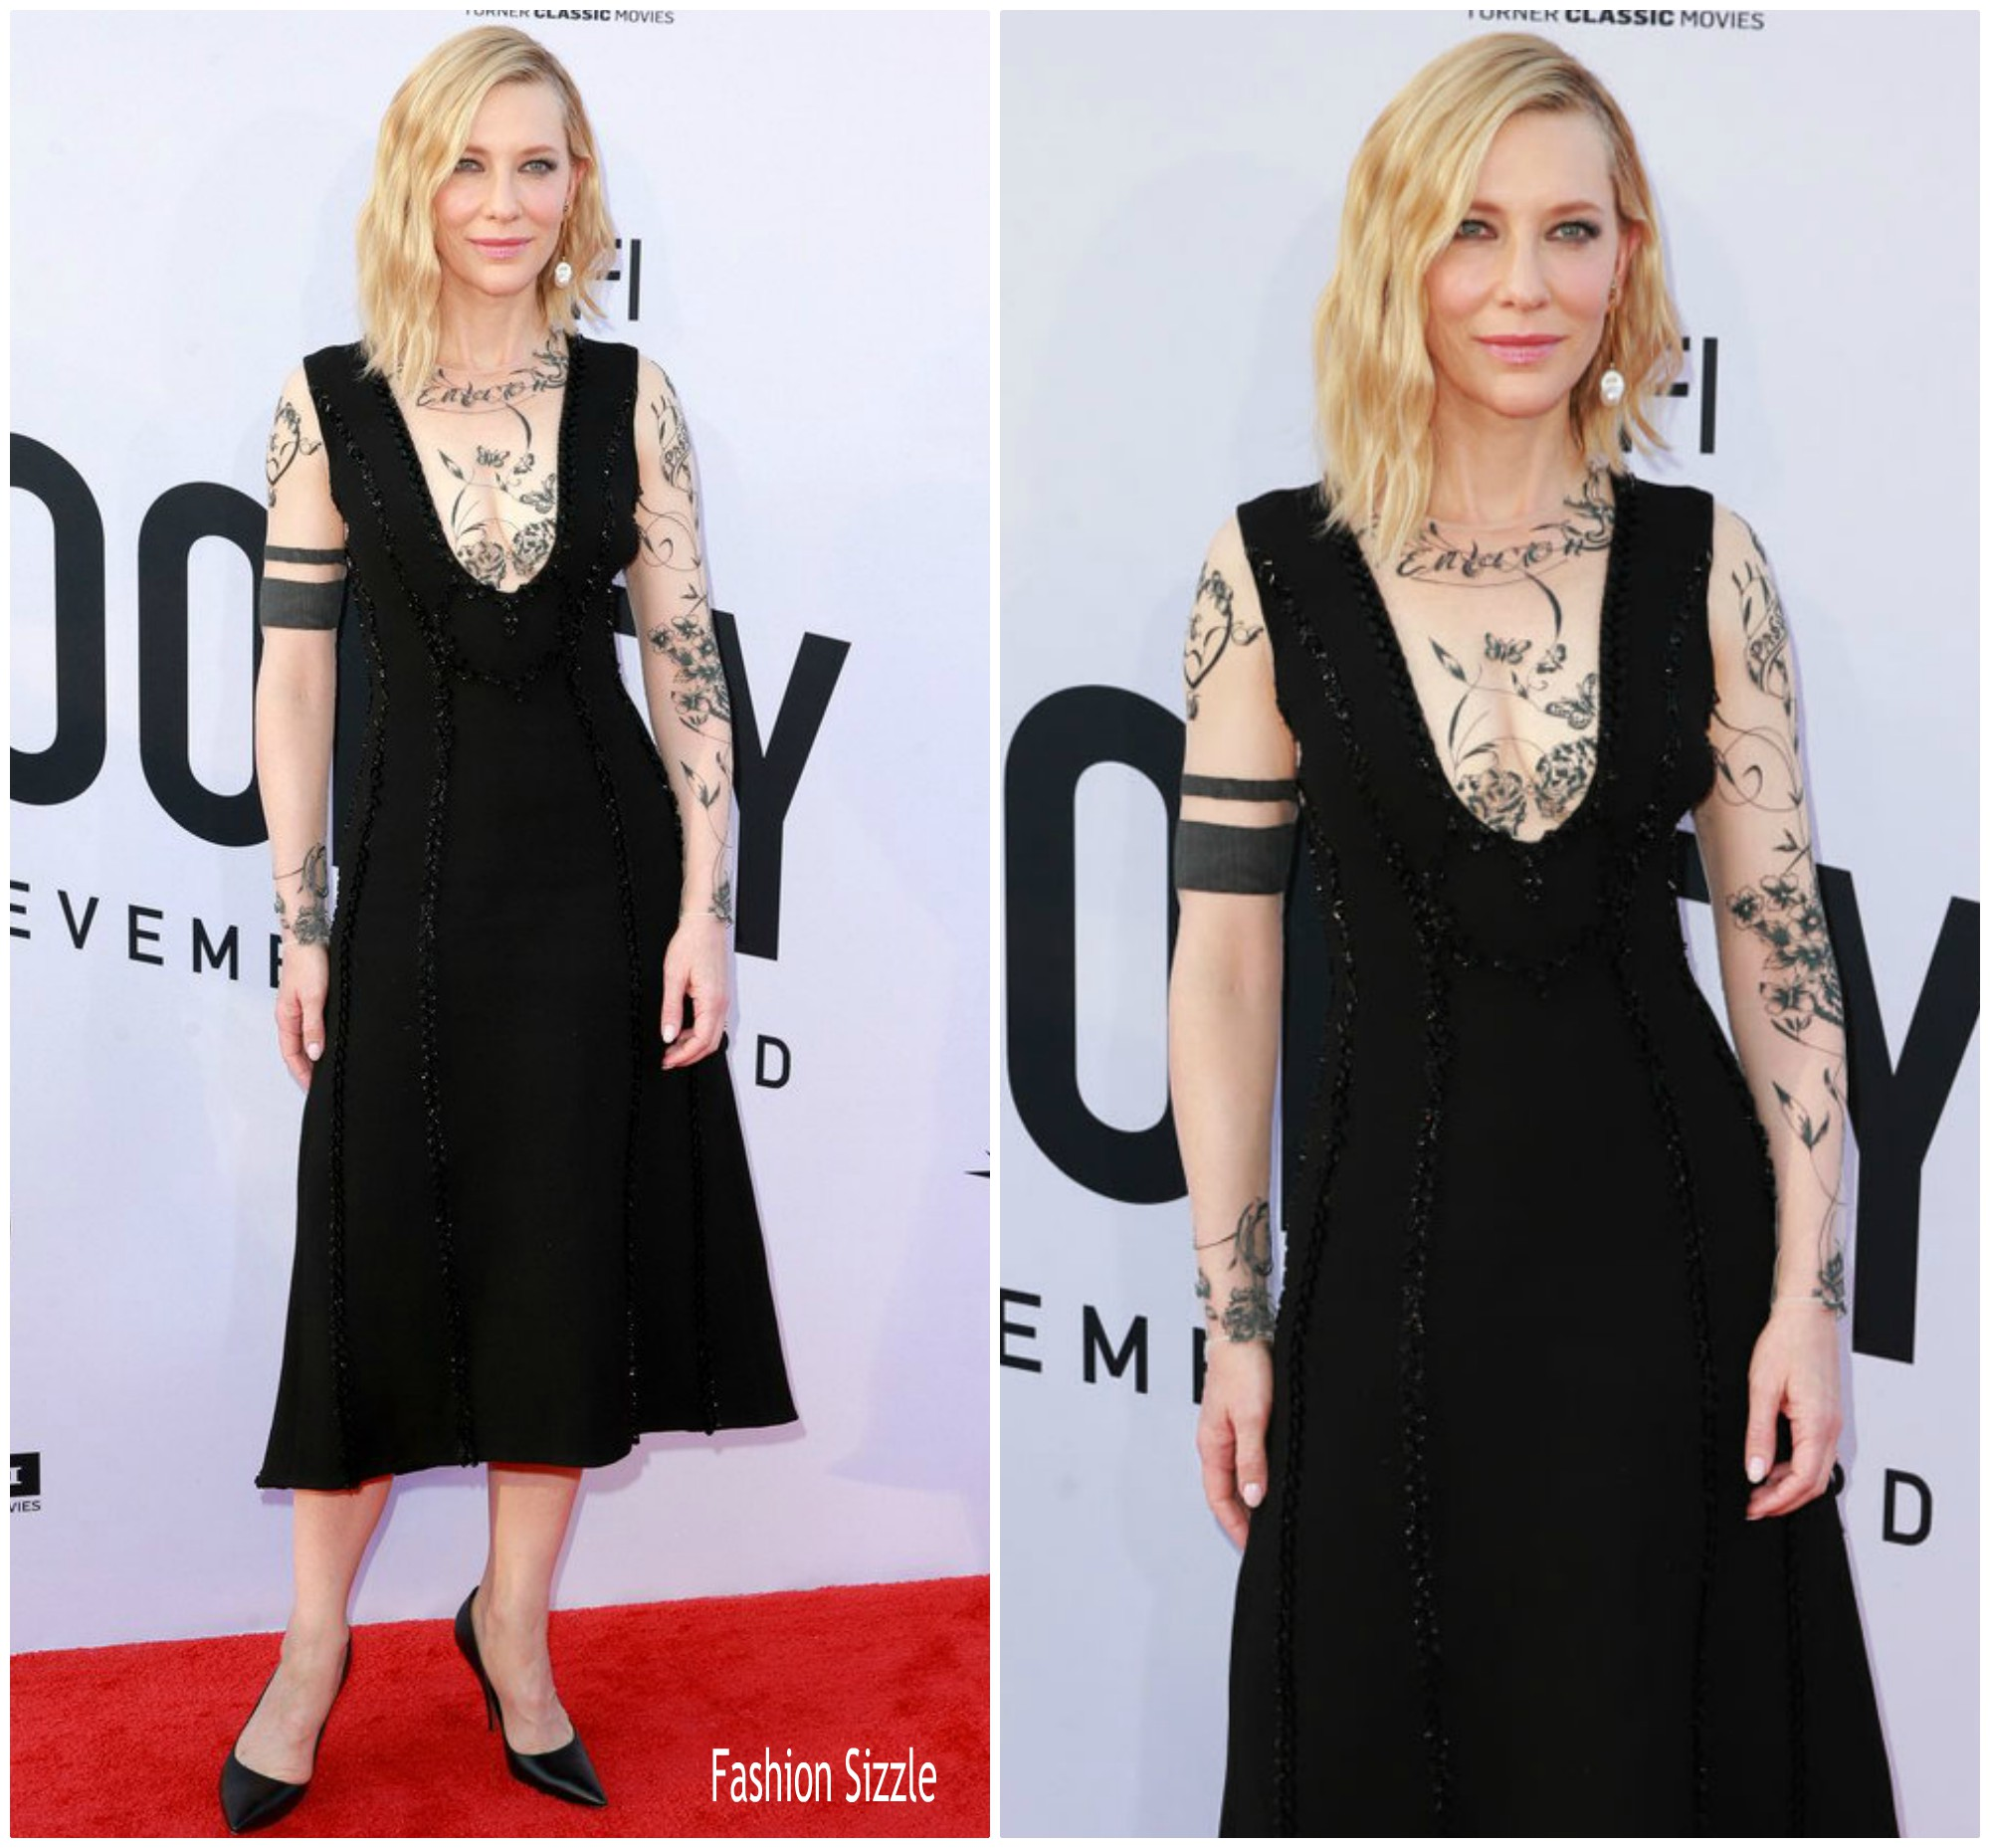 cate-blanchett-in-aouadi-paris-couture-american-film-institutes-46th-life-achievements-award-gala-tribute-to-george-clooney